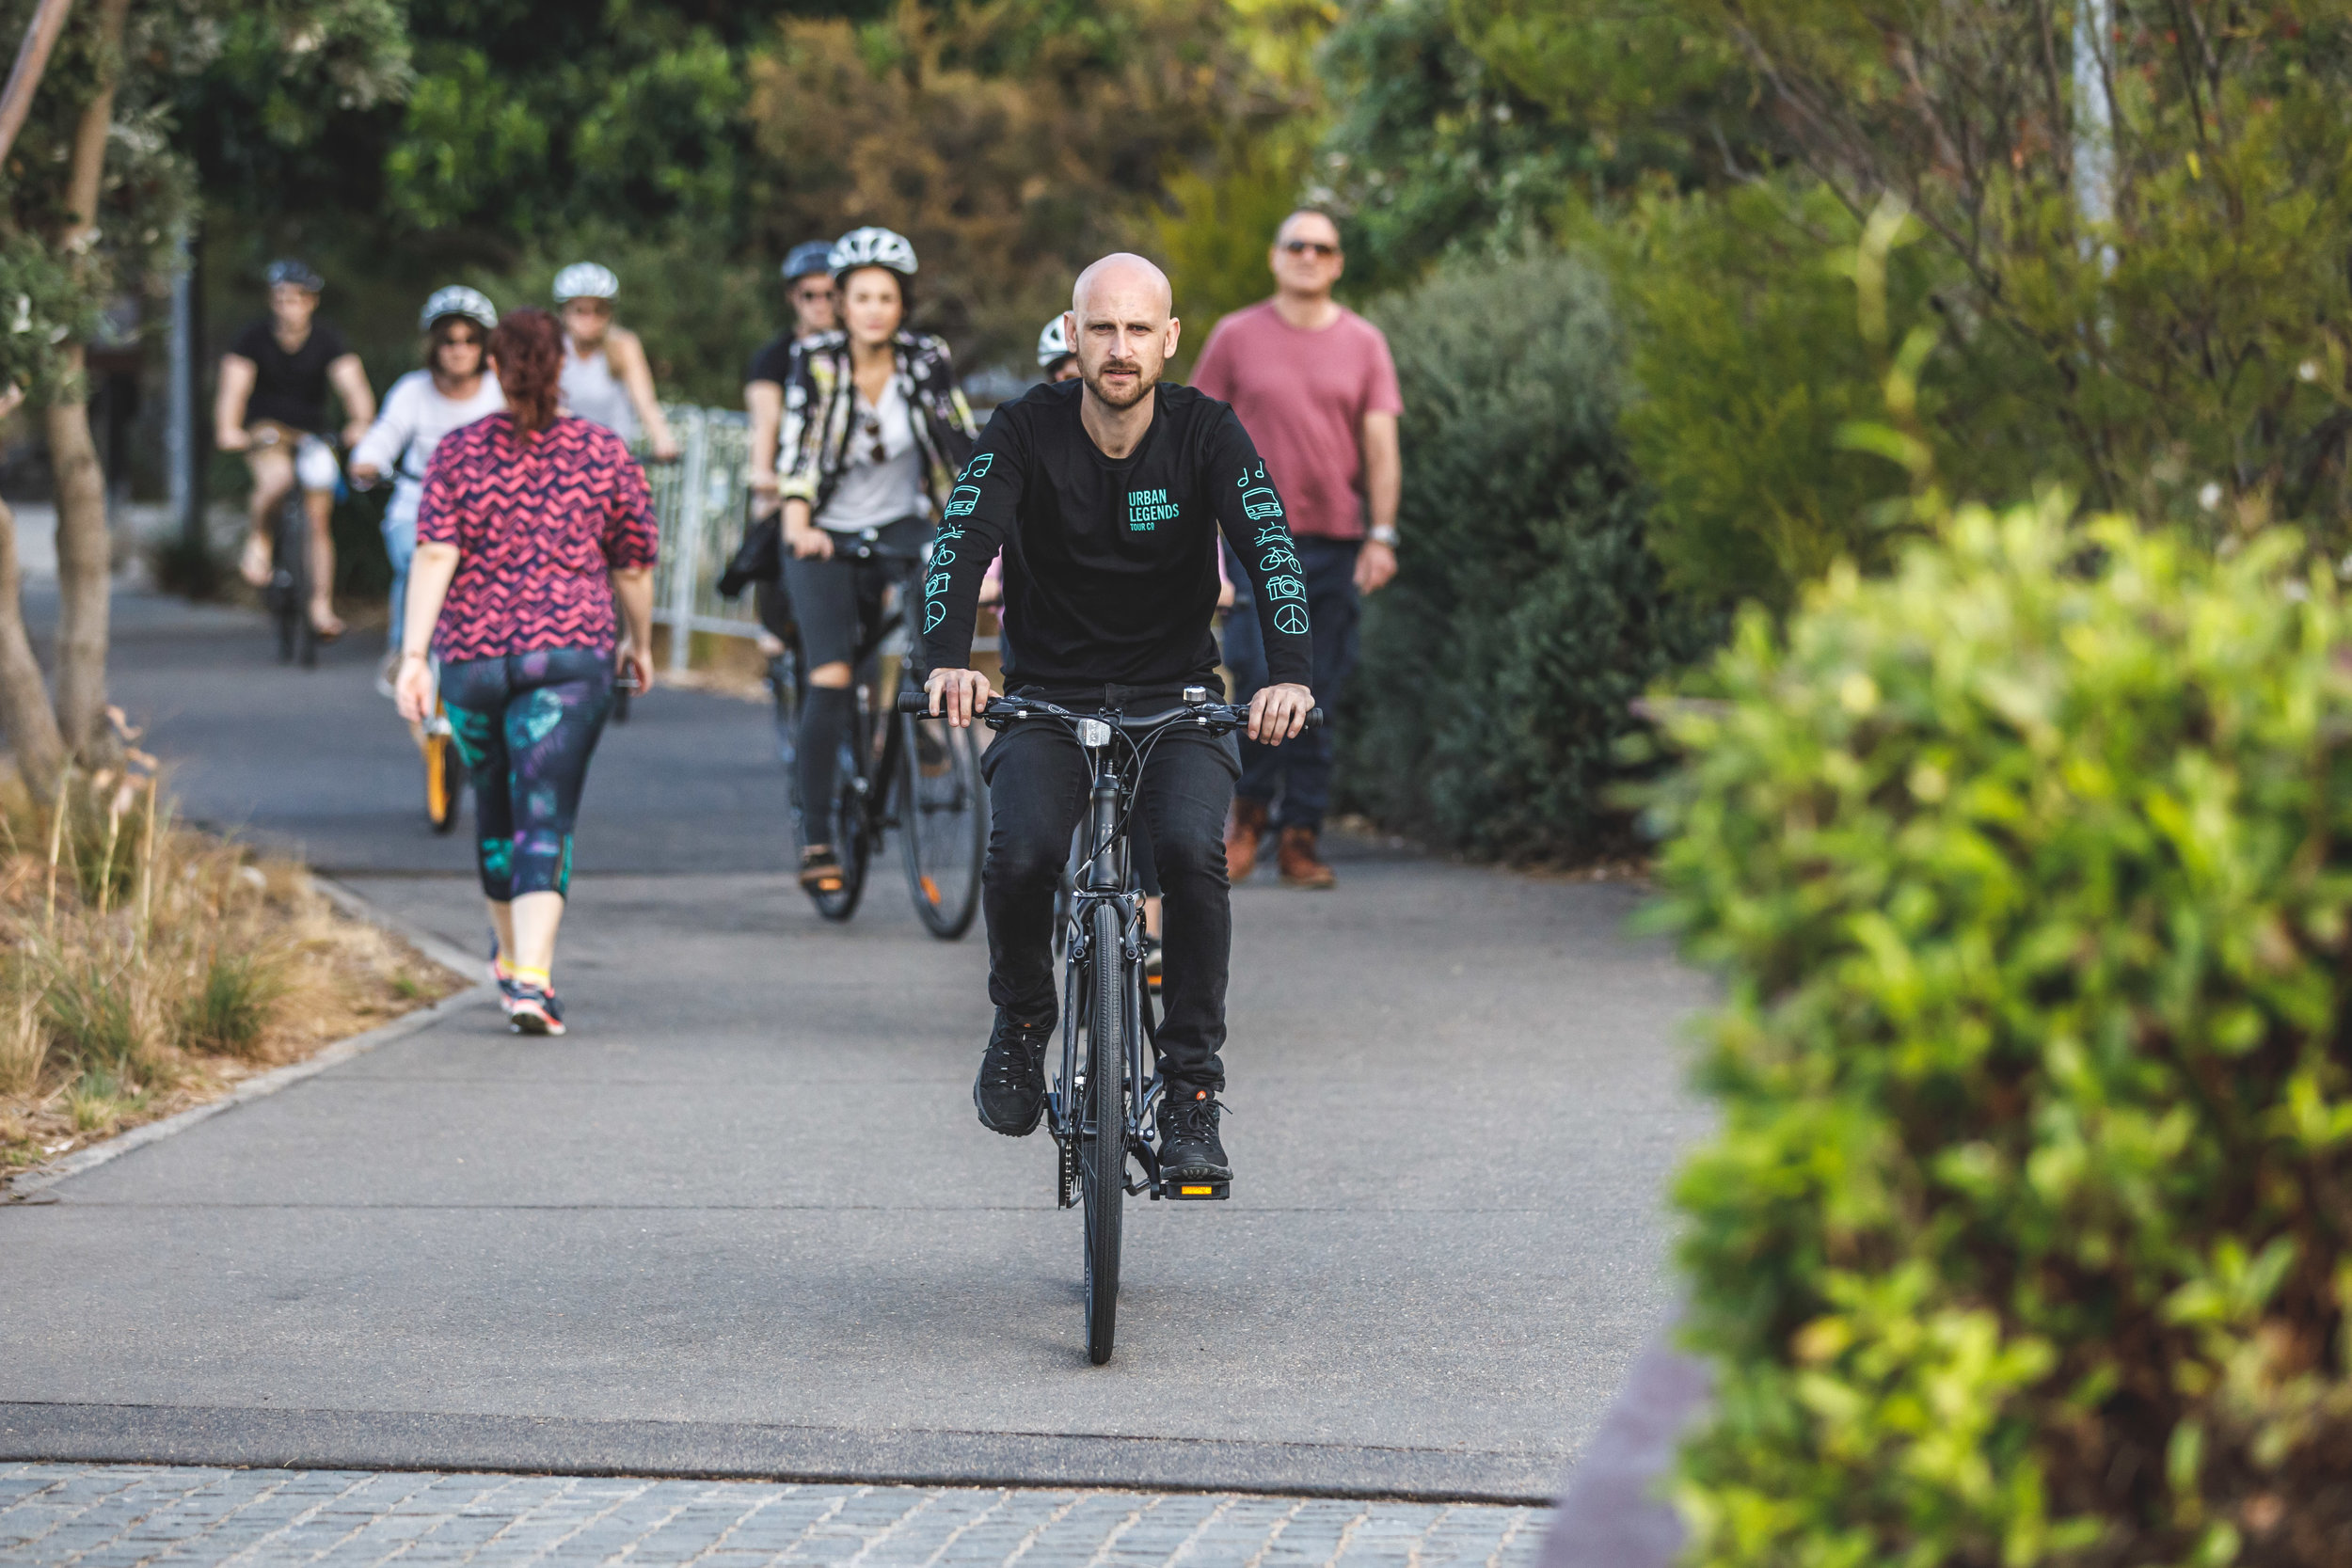 Bike Tours  Explore Sydney's most picturesque bicycle route on our unique bicycle tour